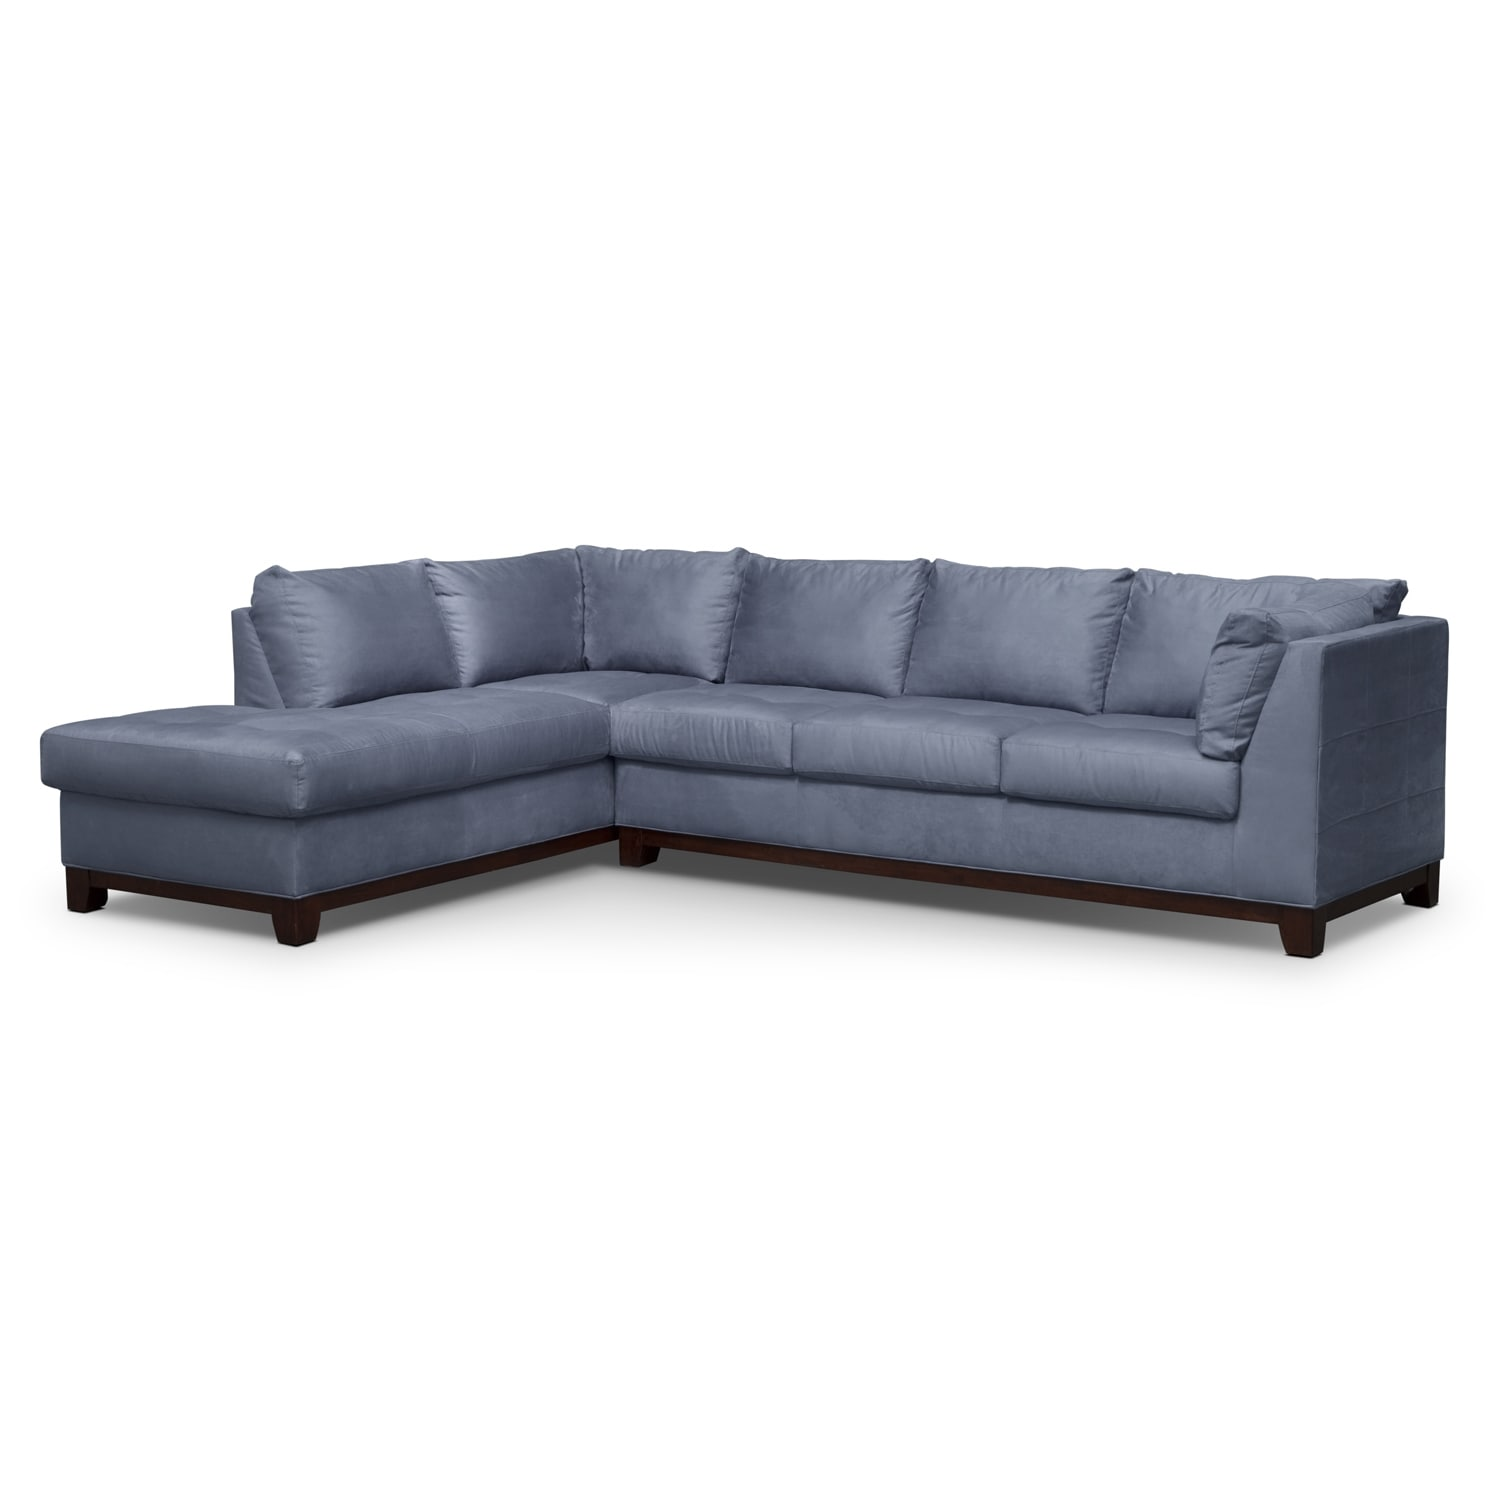 Soho 2 piece sectional with left facing chaise steel for 2 piece sectional sofa with chaise